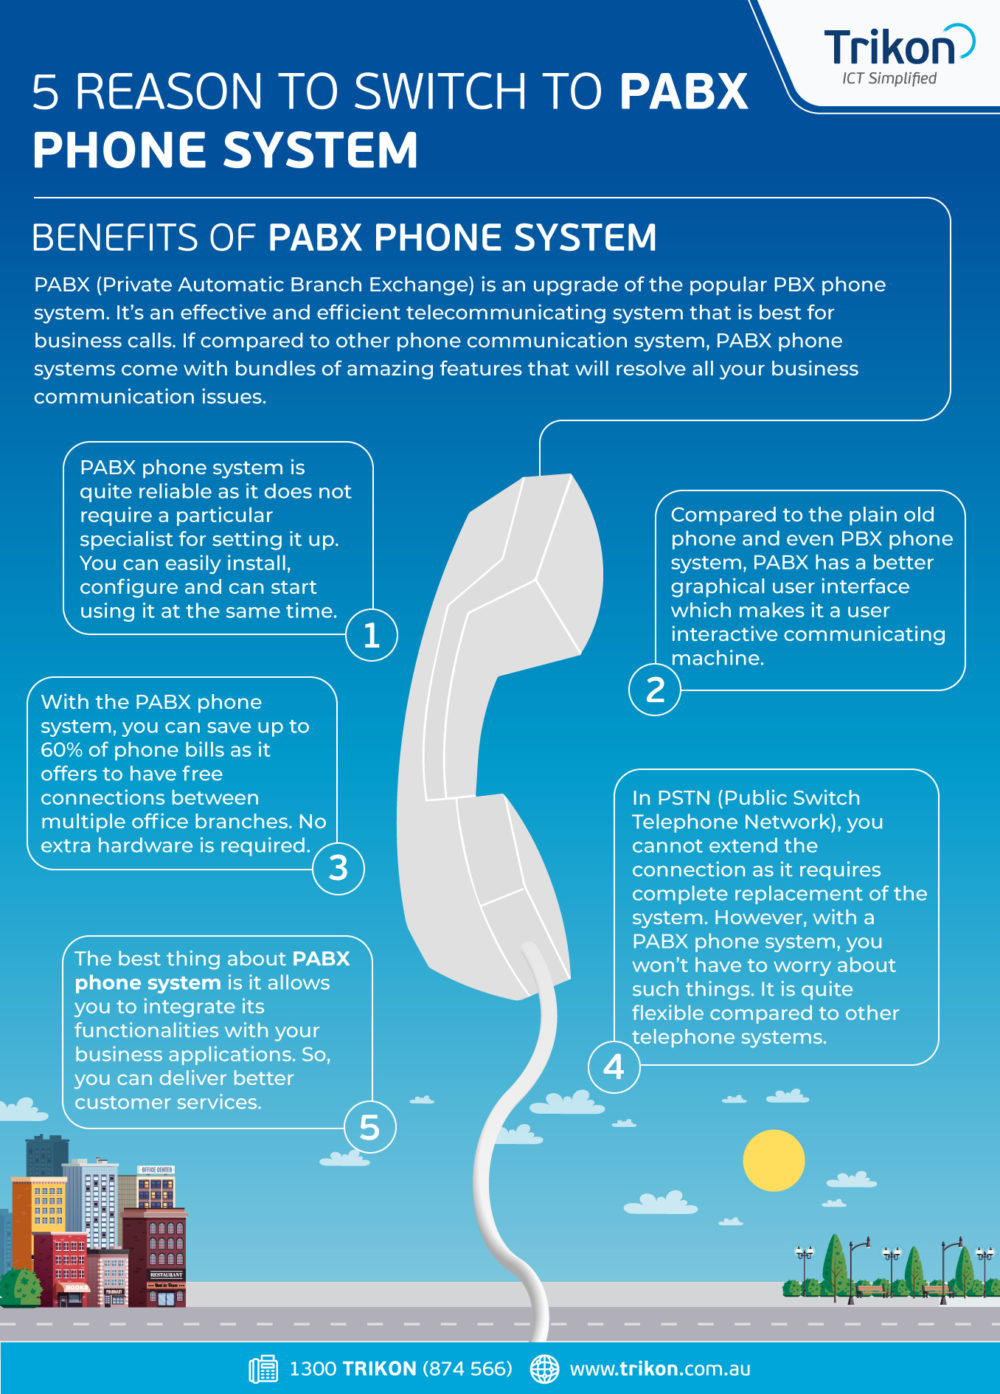 5 Reason to Switch to PABX Phone System